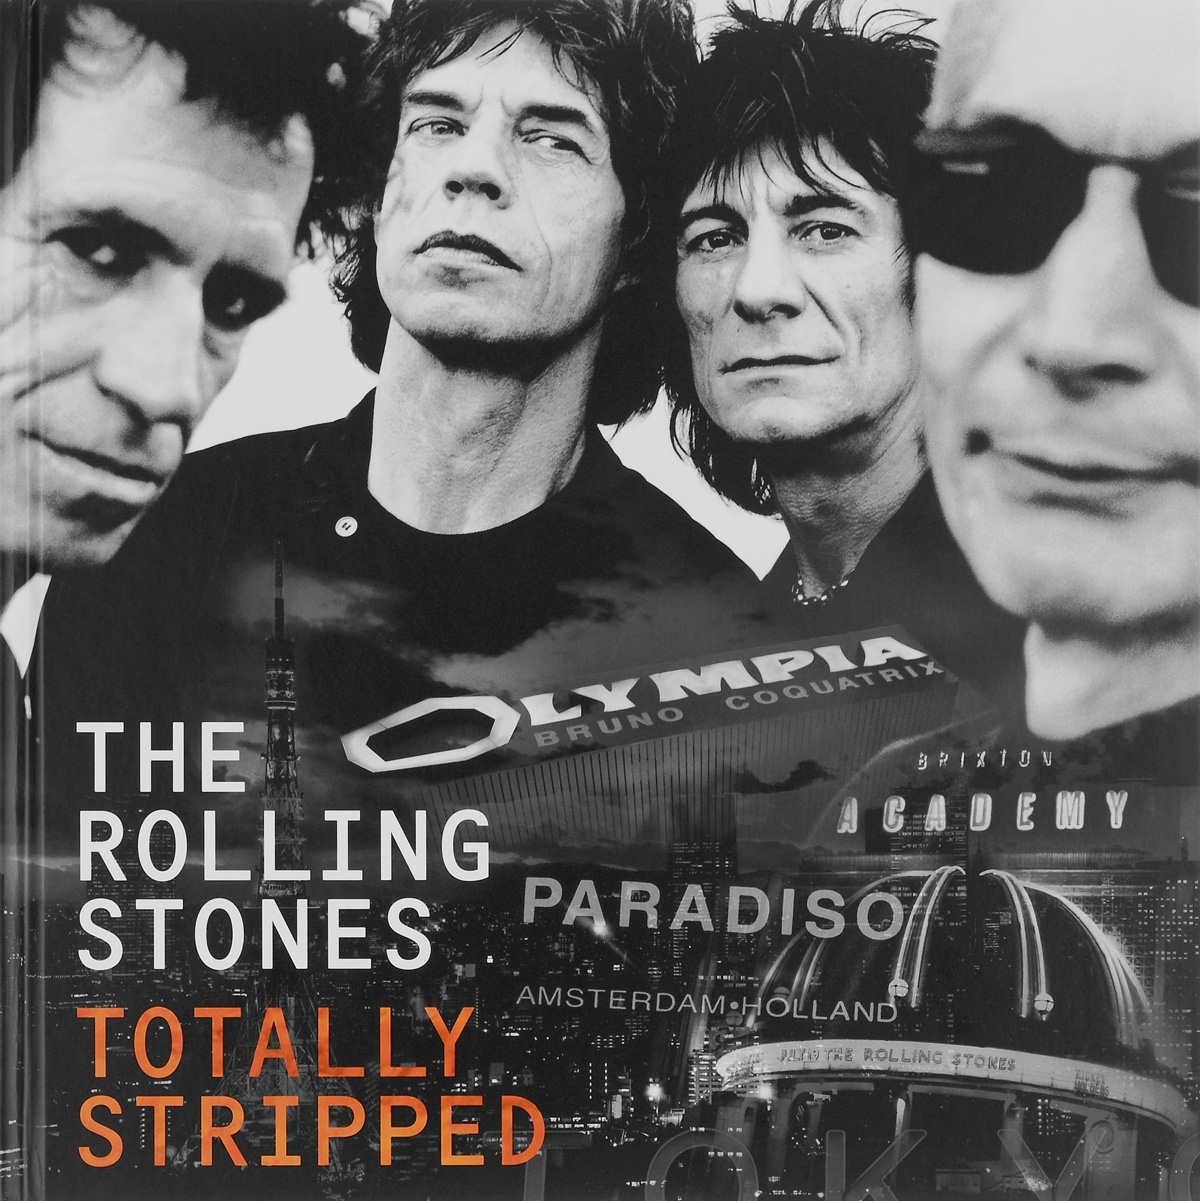 The Rolling Stones The Rolling Stones. The Totally Stripped. Deluxe Edition (CD + 4 DVD) down and out in paris and london